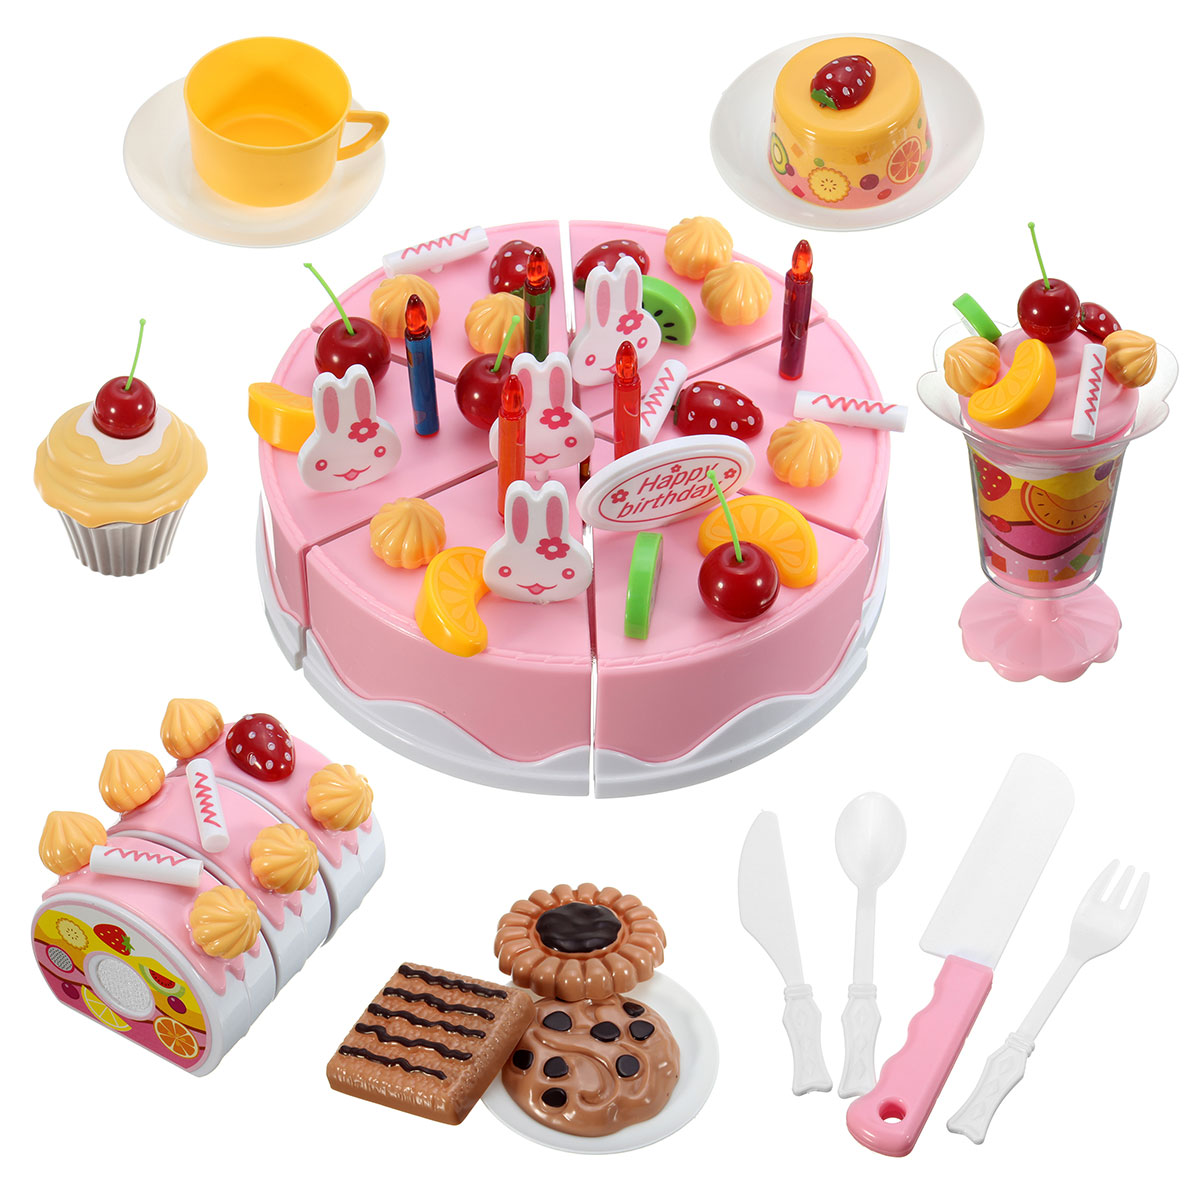 Miniature Kitchen Sets Toy Pretend Play Pink Cutting Birthday Cake